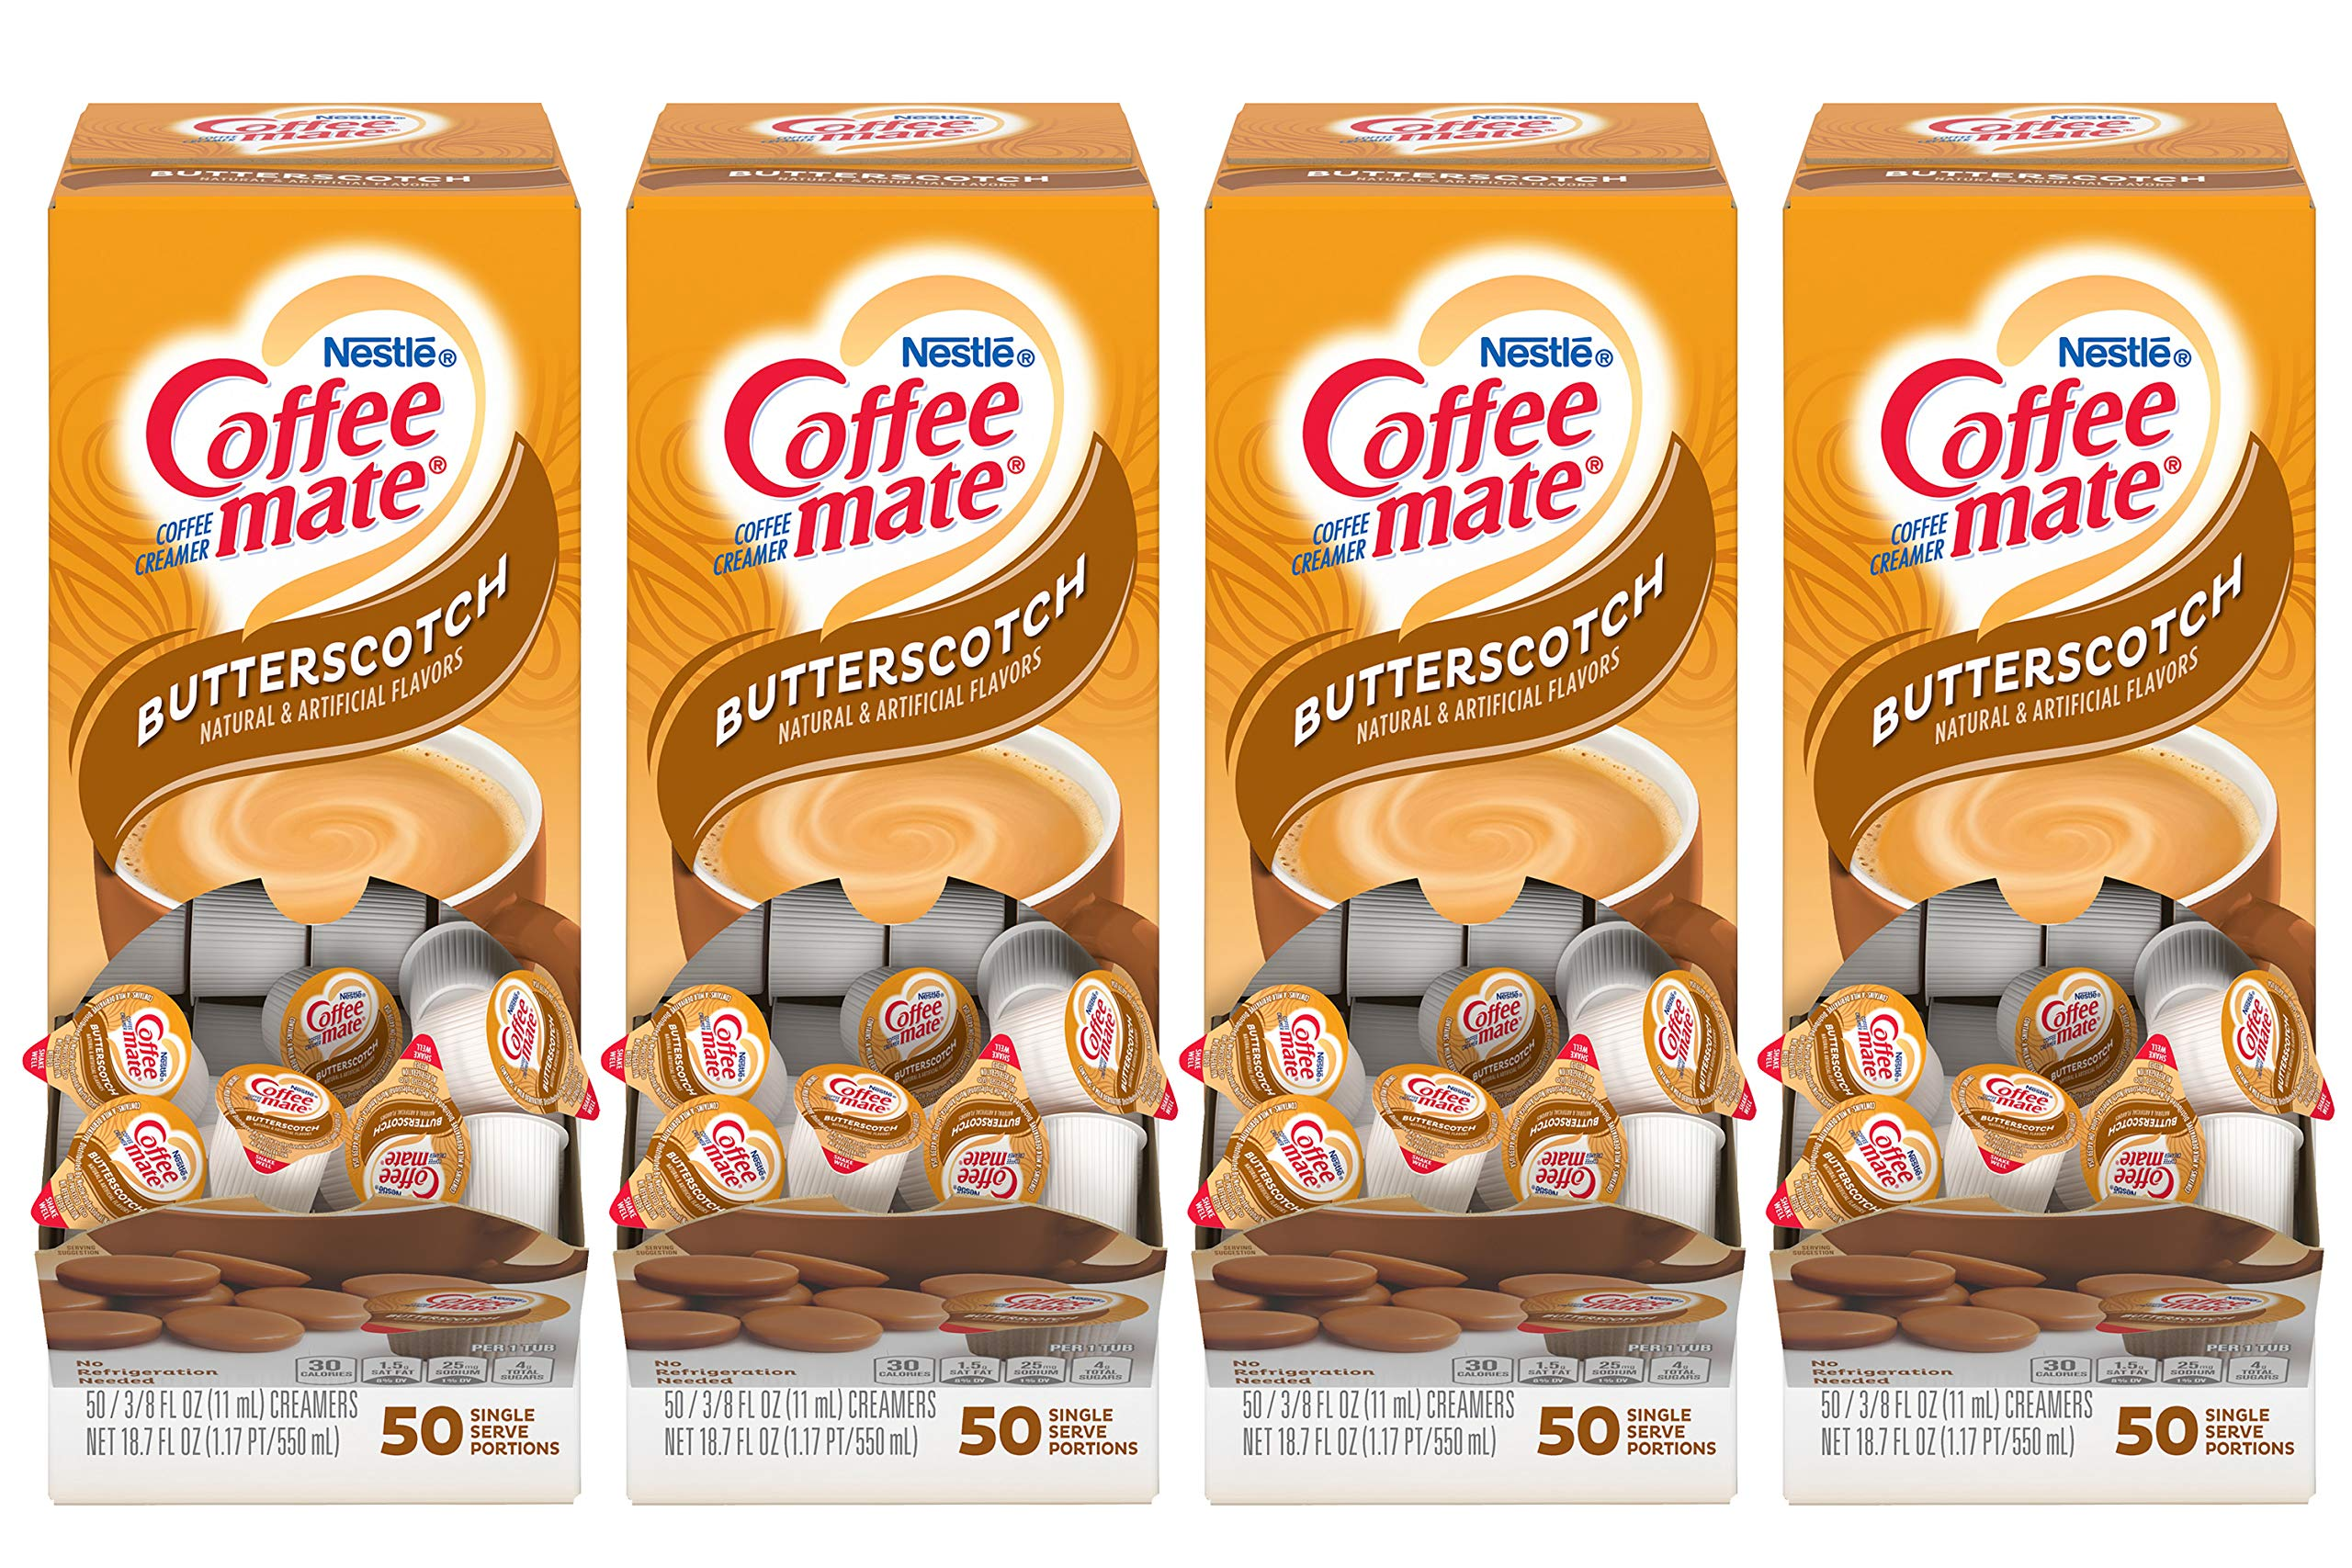 Nestle Coffee-mate Coffee Creamer, Butterscotch, Liquid Creamer Singles,50 Count (Pack of 4) by Nestle Coffee Mate (Image #1)